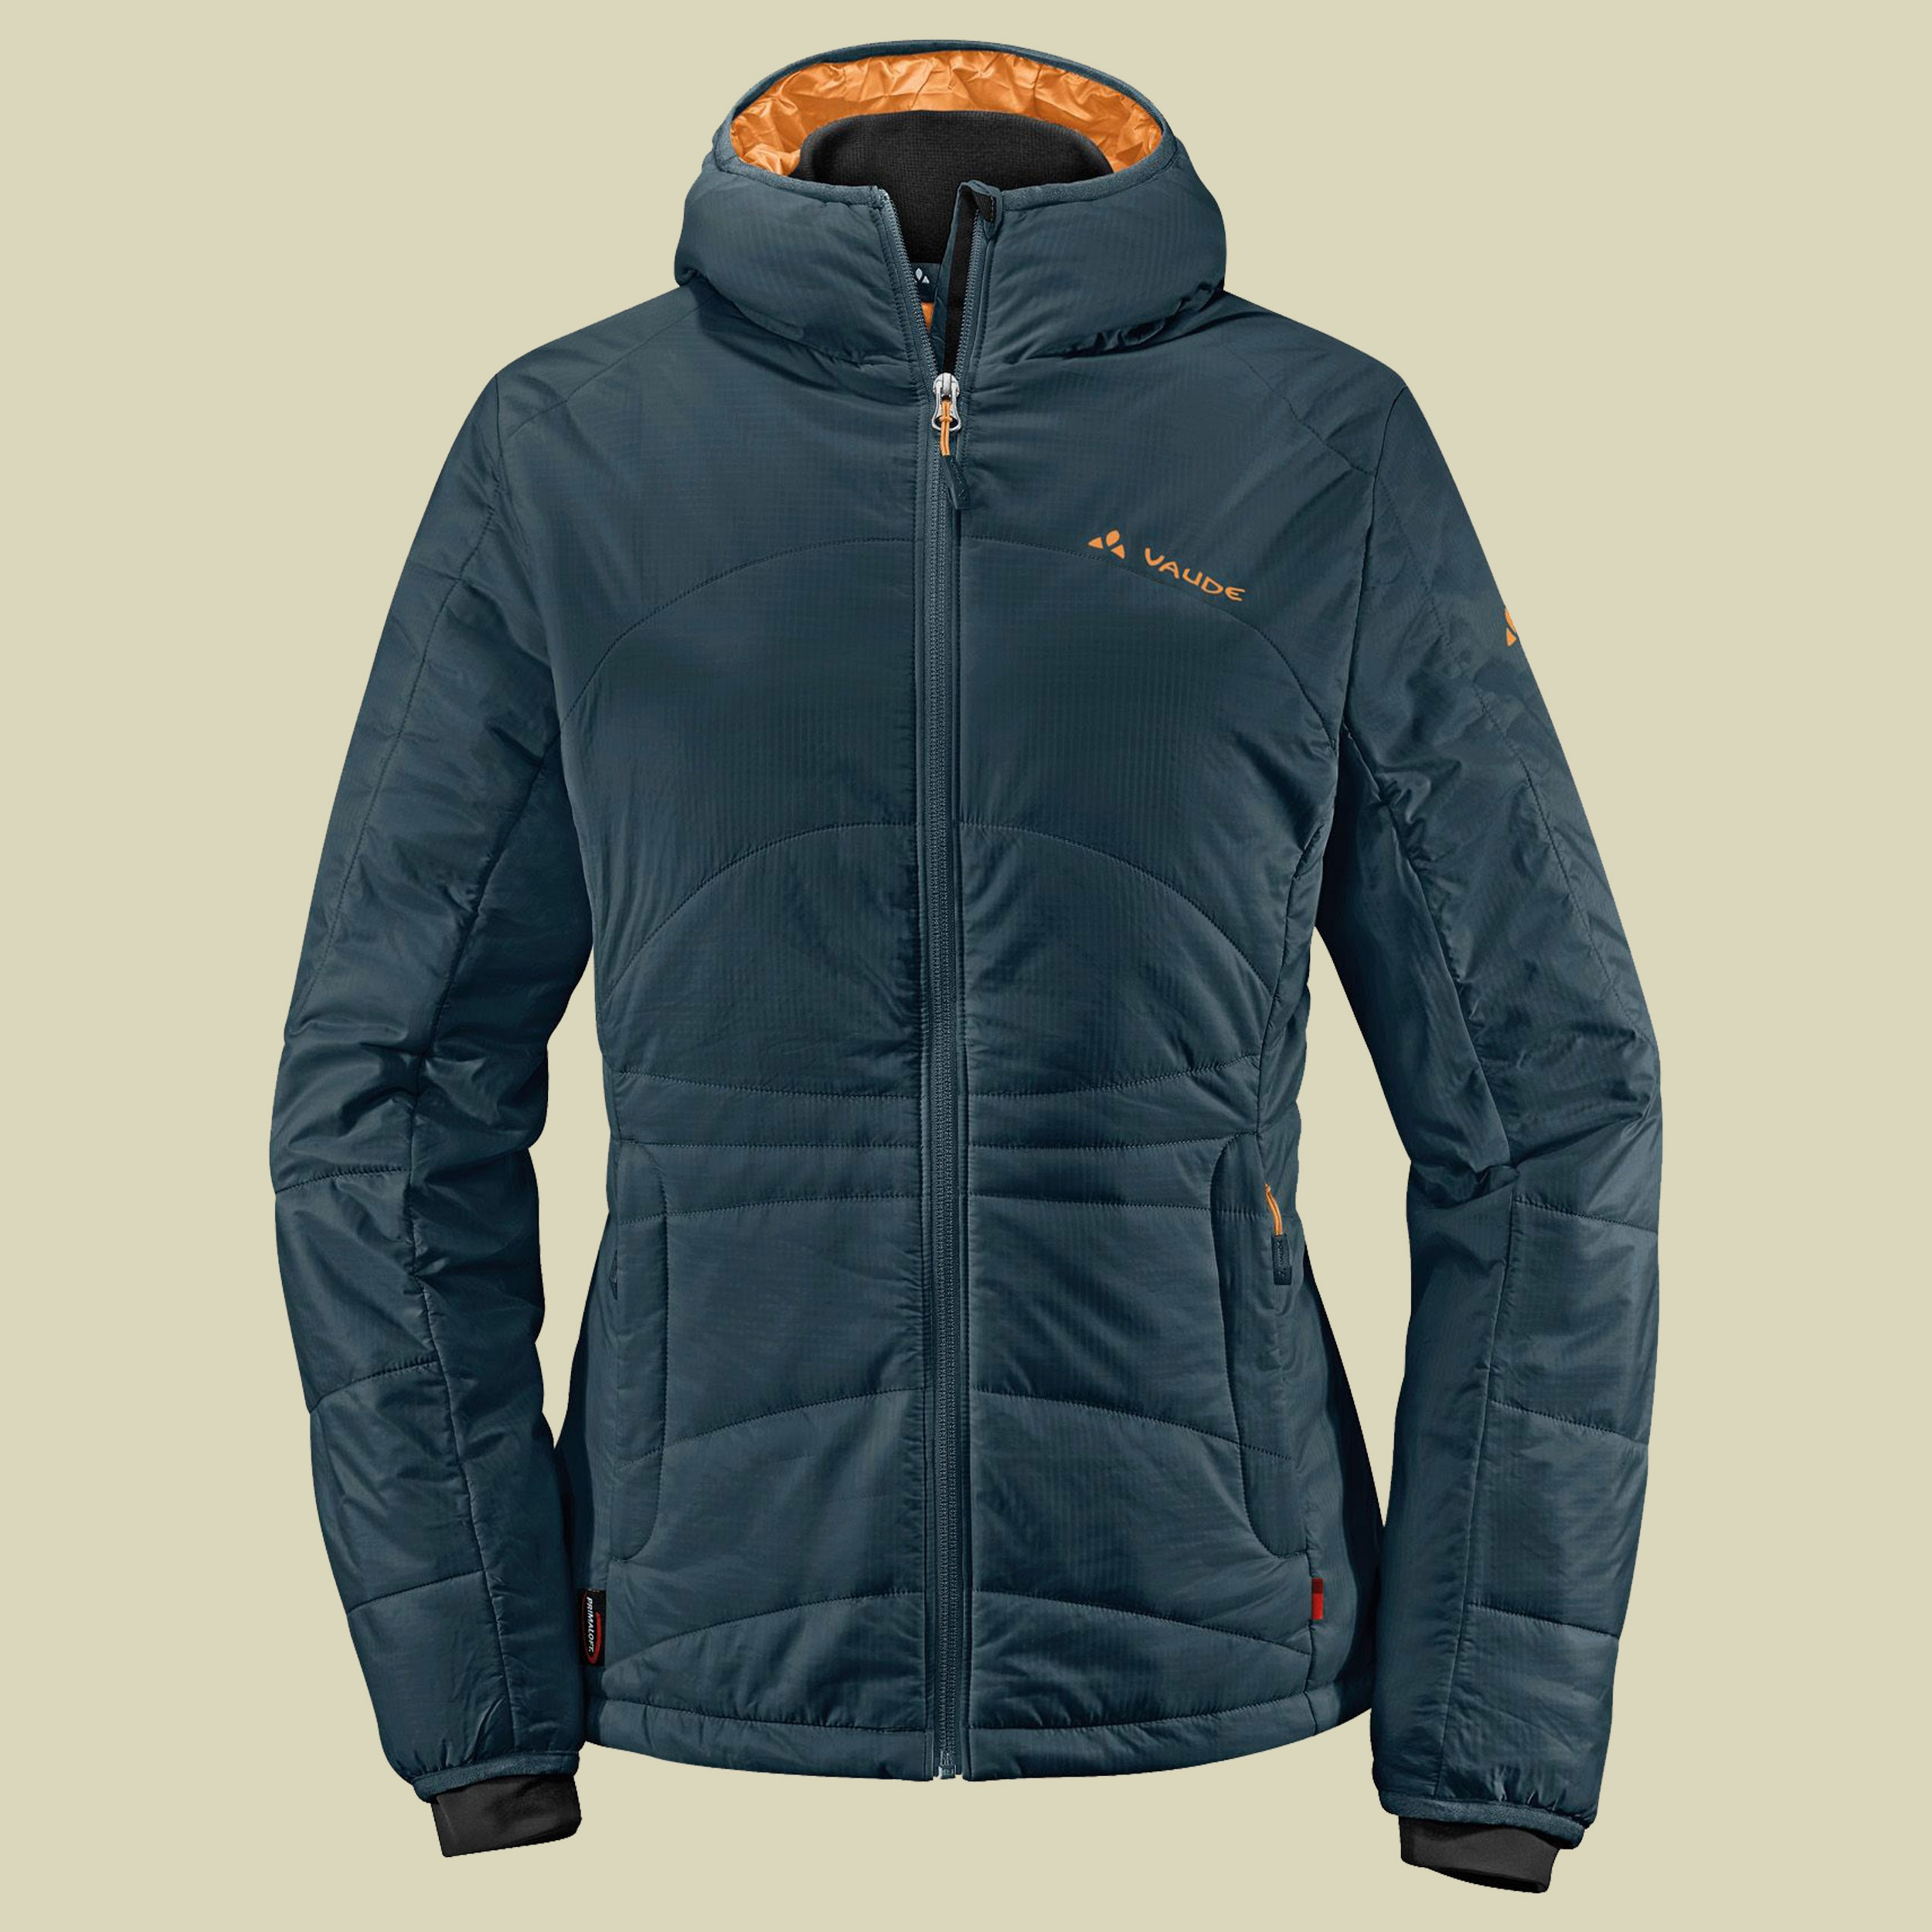 Sulit Insulation Jacket Women